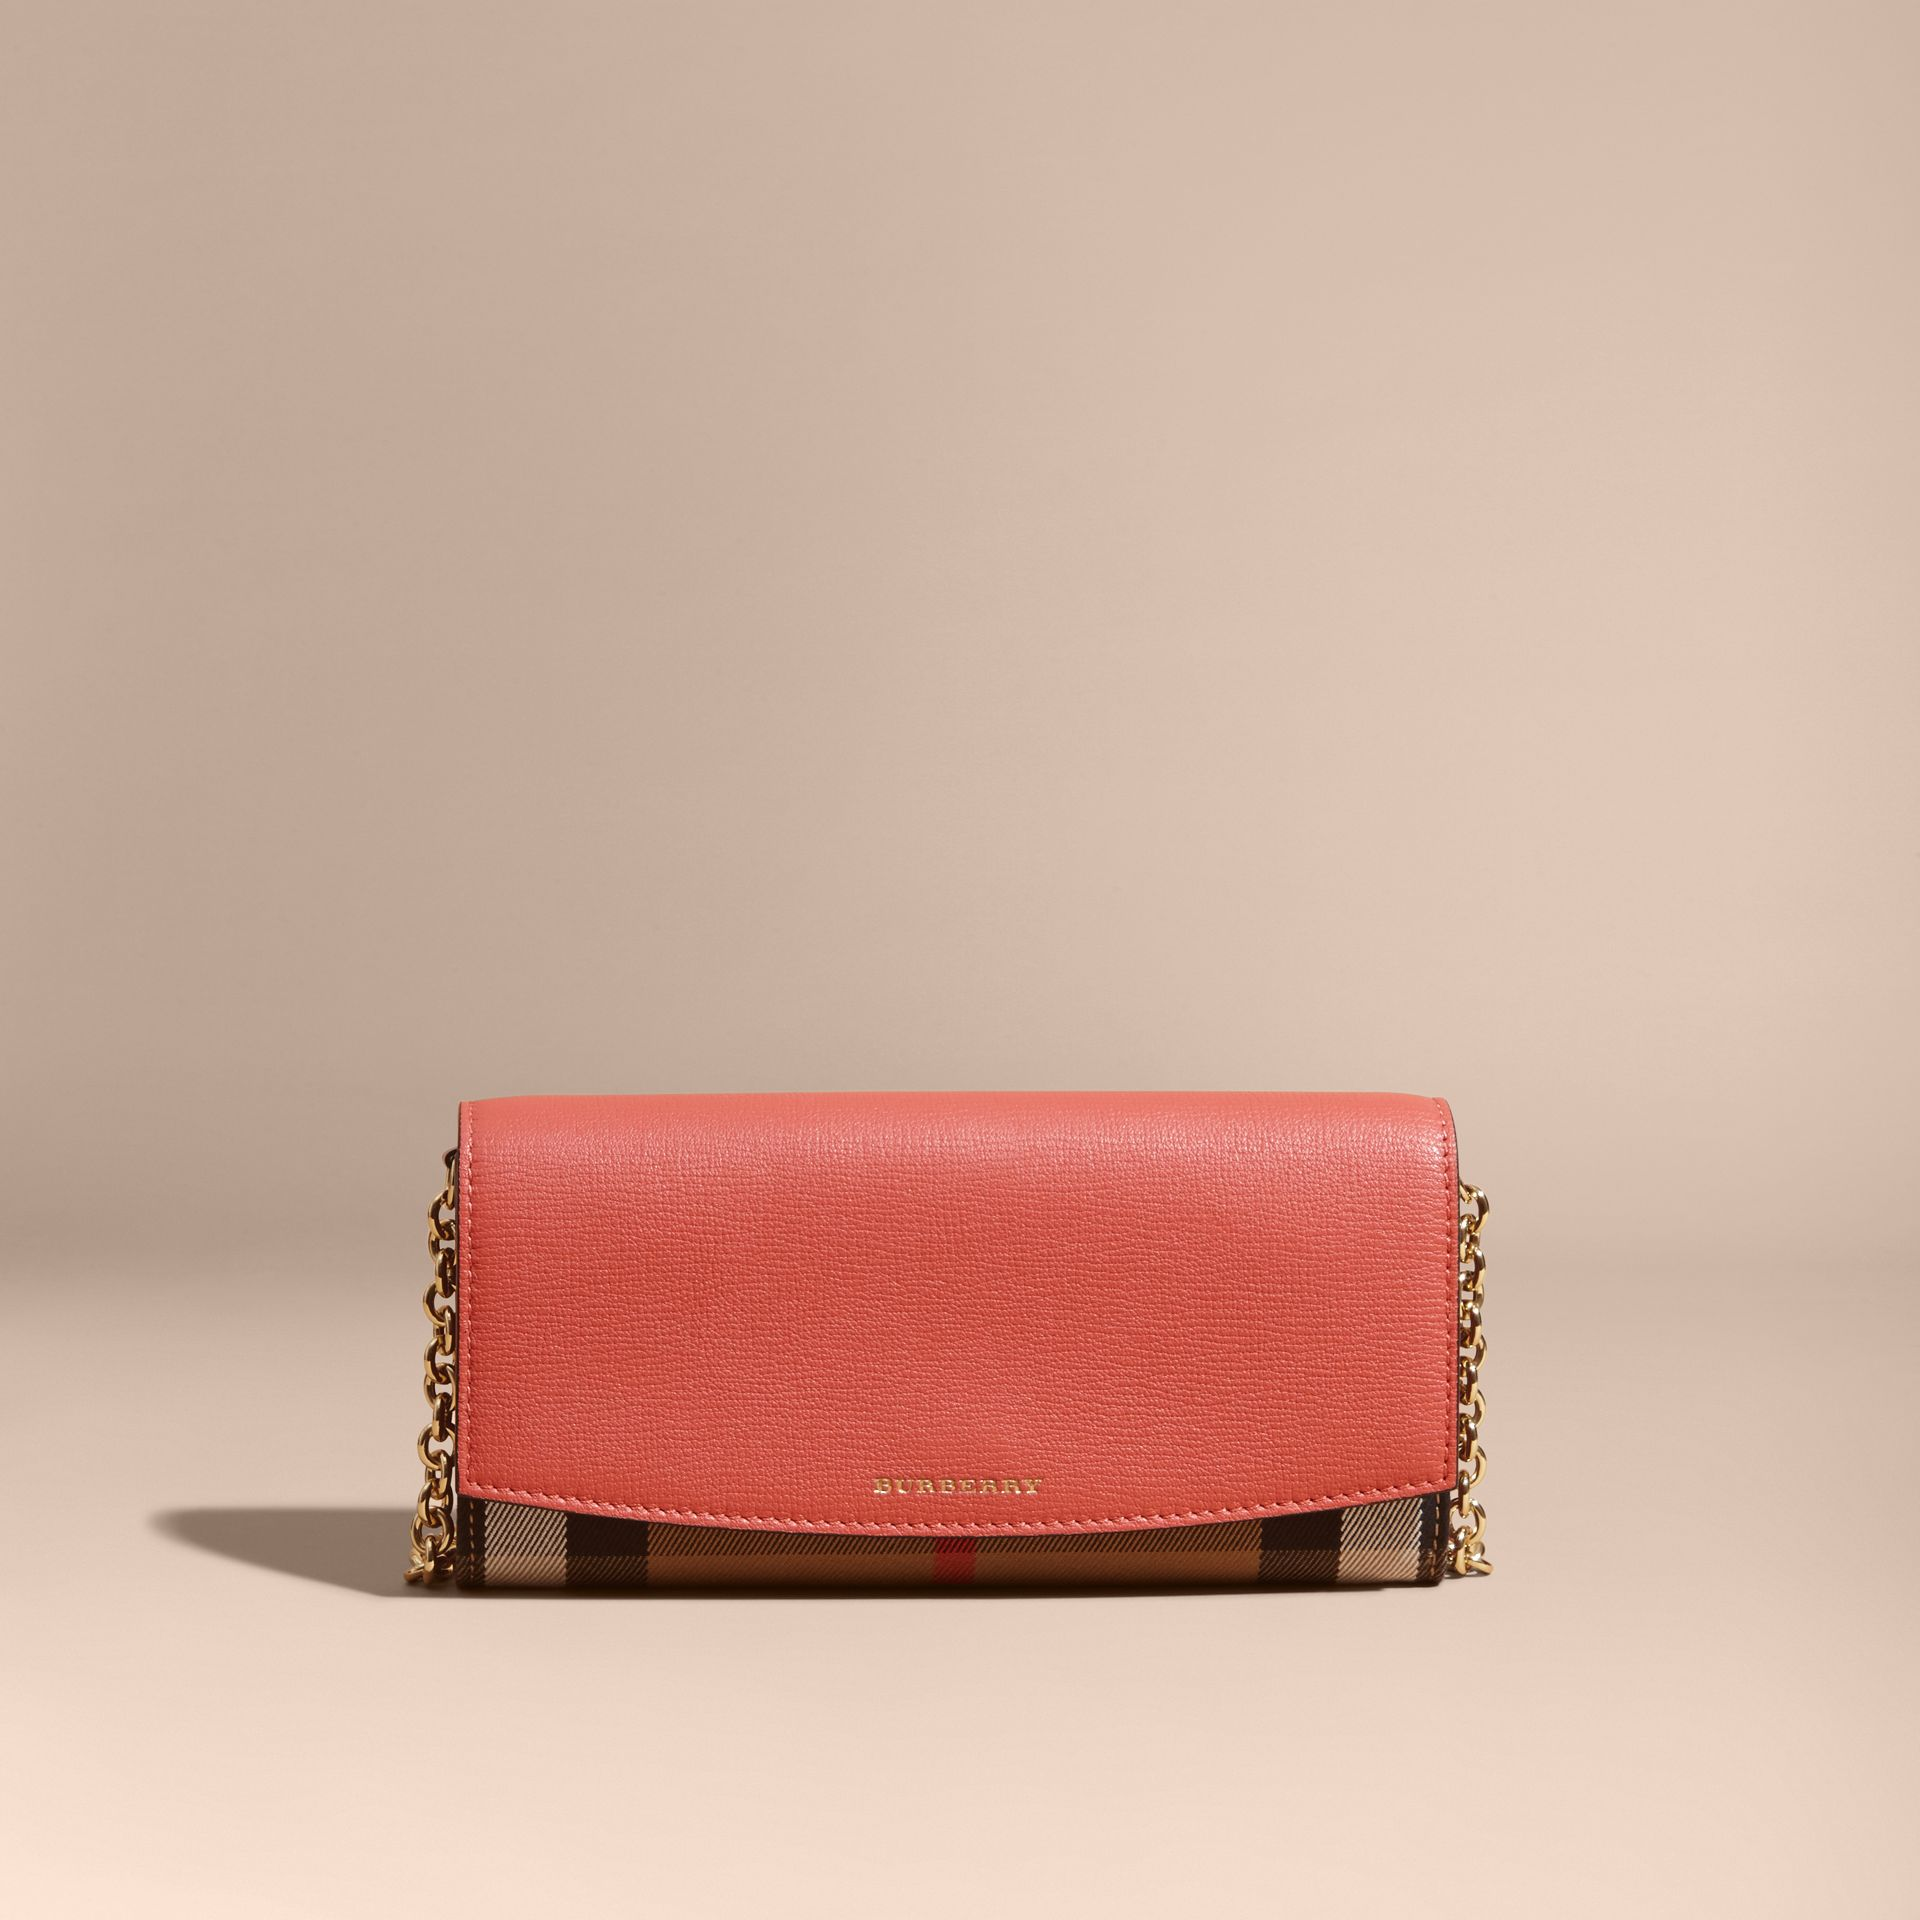 House Check and Leather Wallet with Chain in Cinnamon Red - Women | Burberry United Kingdom - gallery image 7